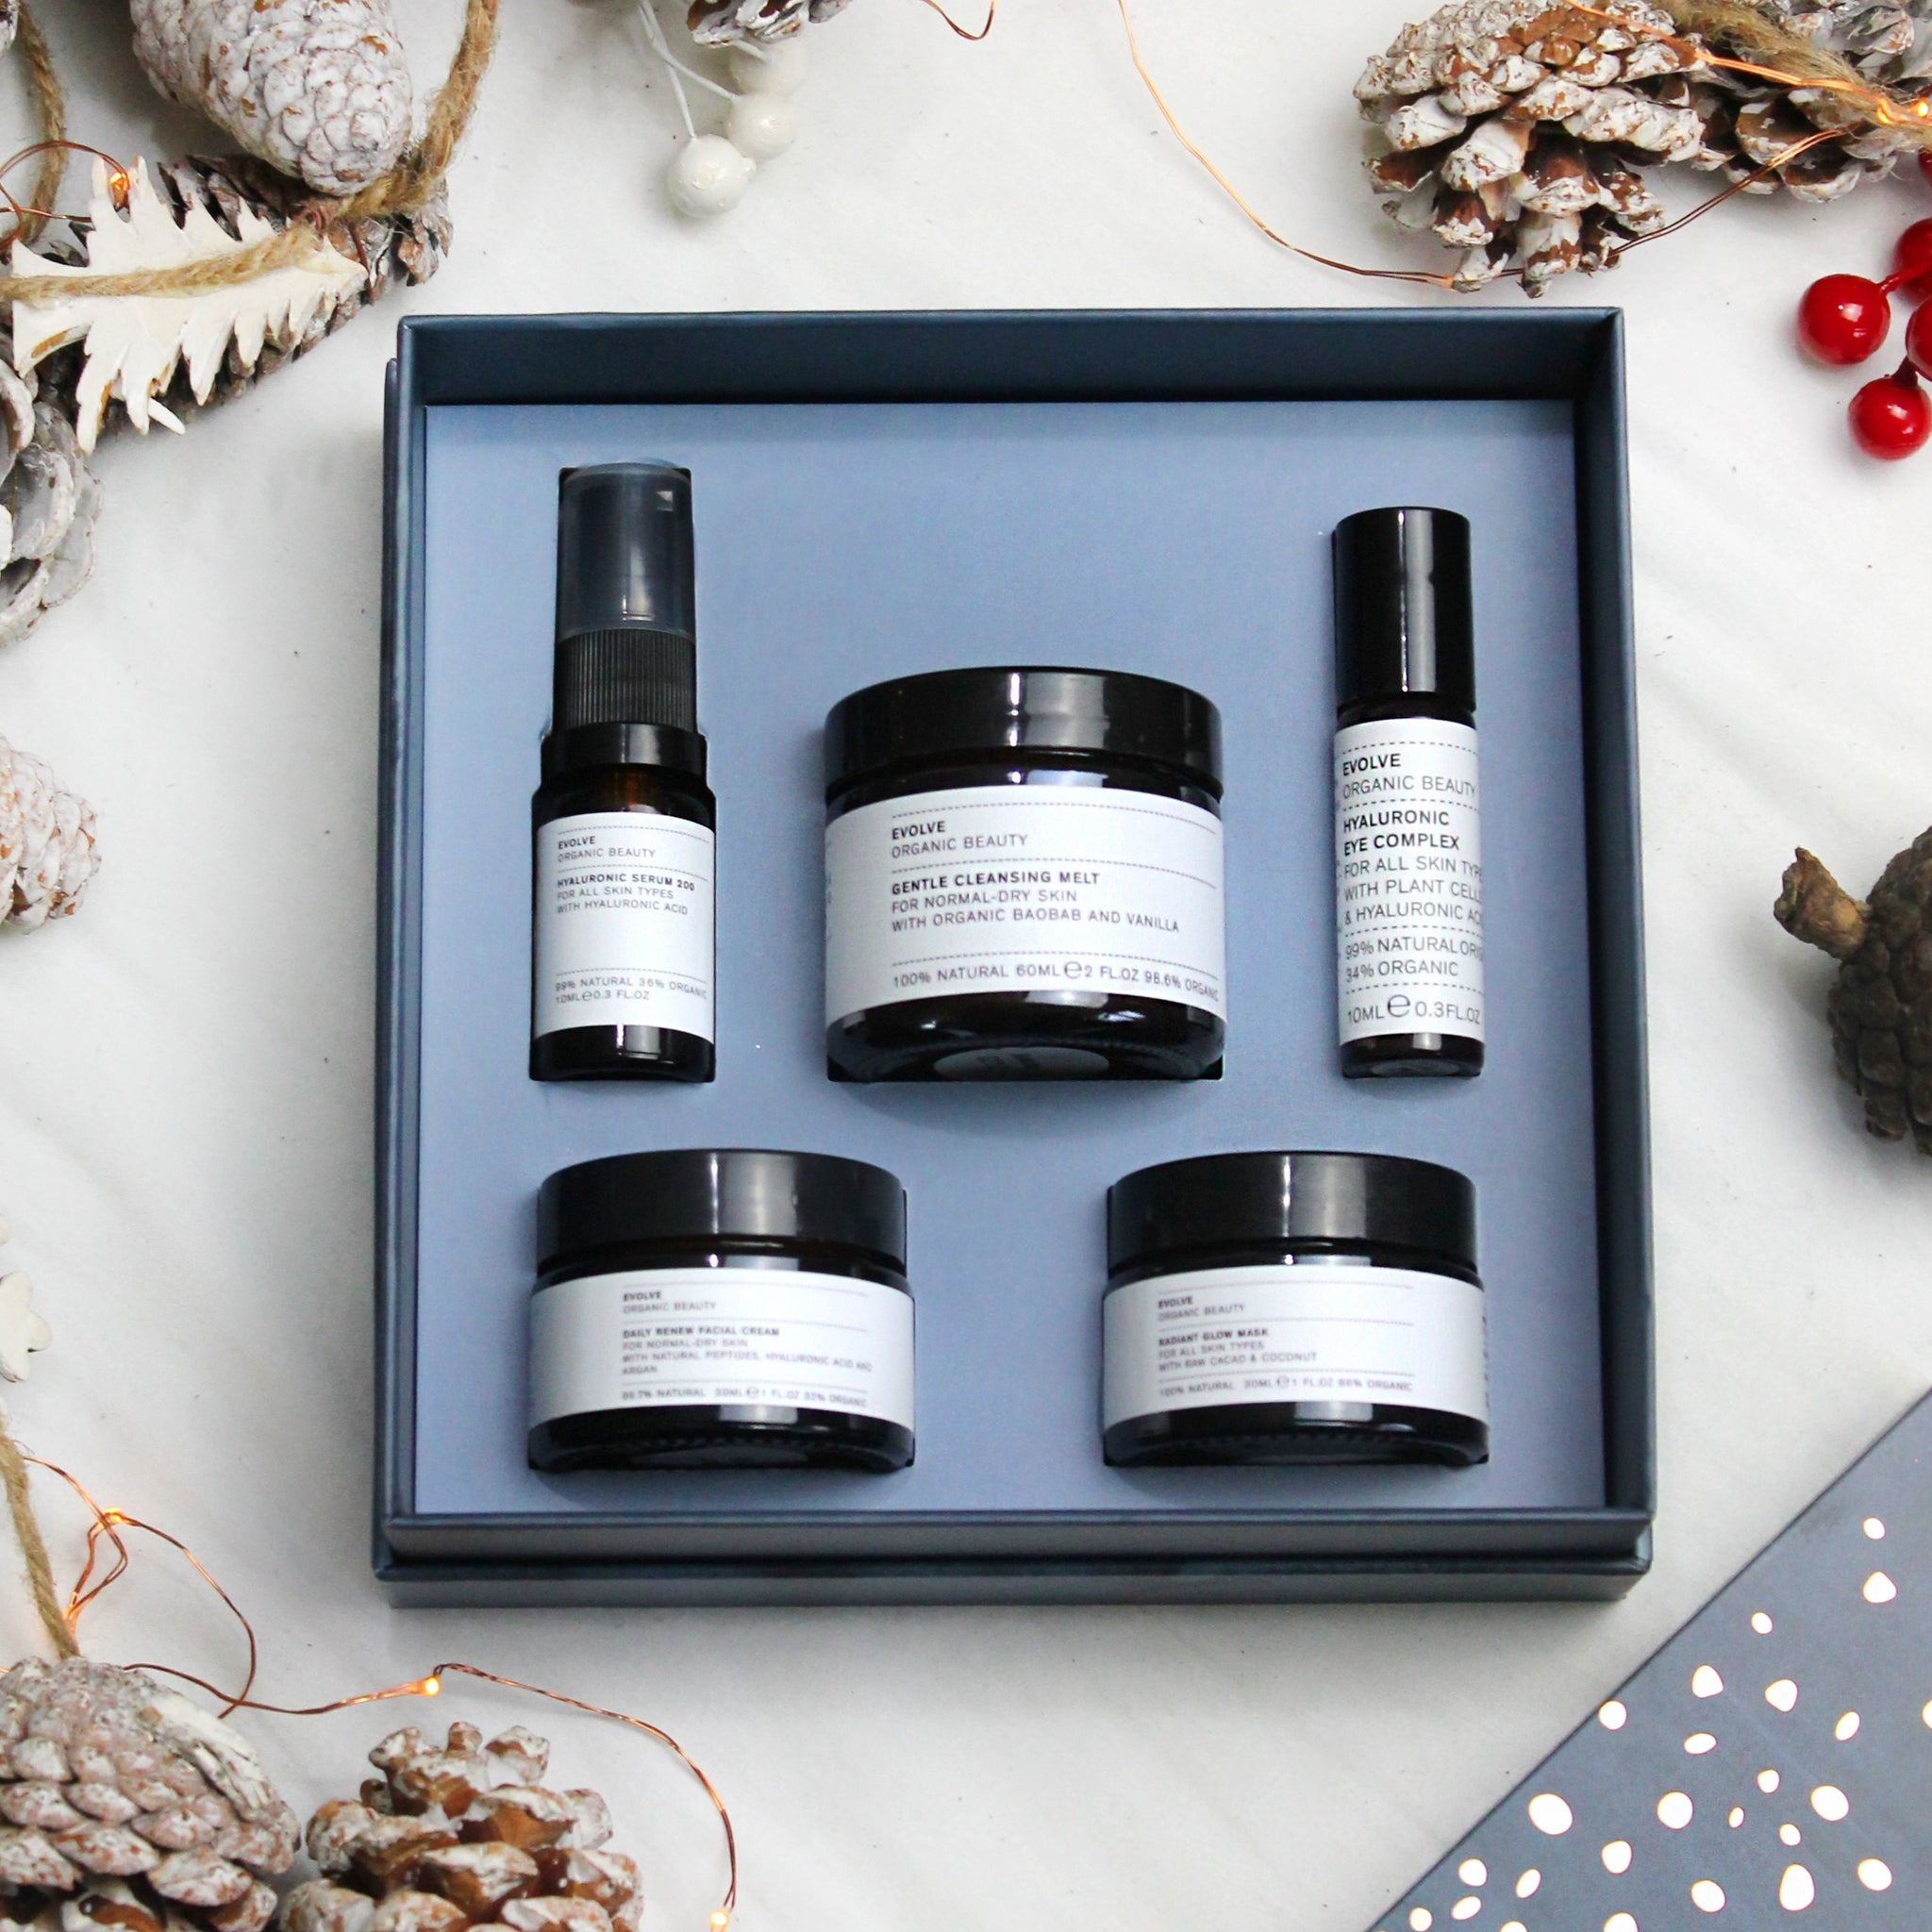 Evolve Beauty - Get up and Glow Facial in a Box Gift Set